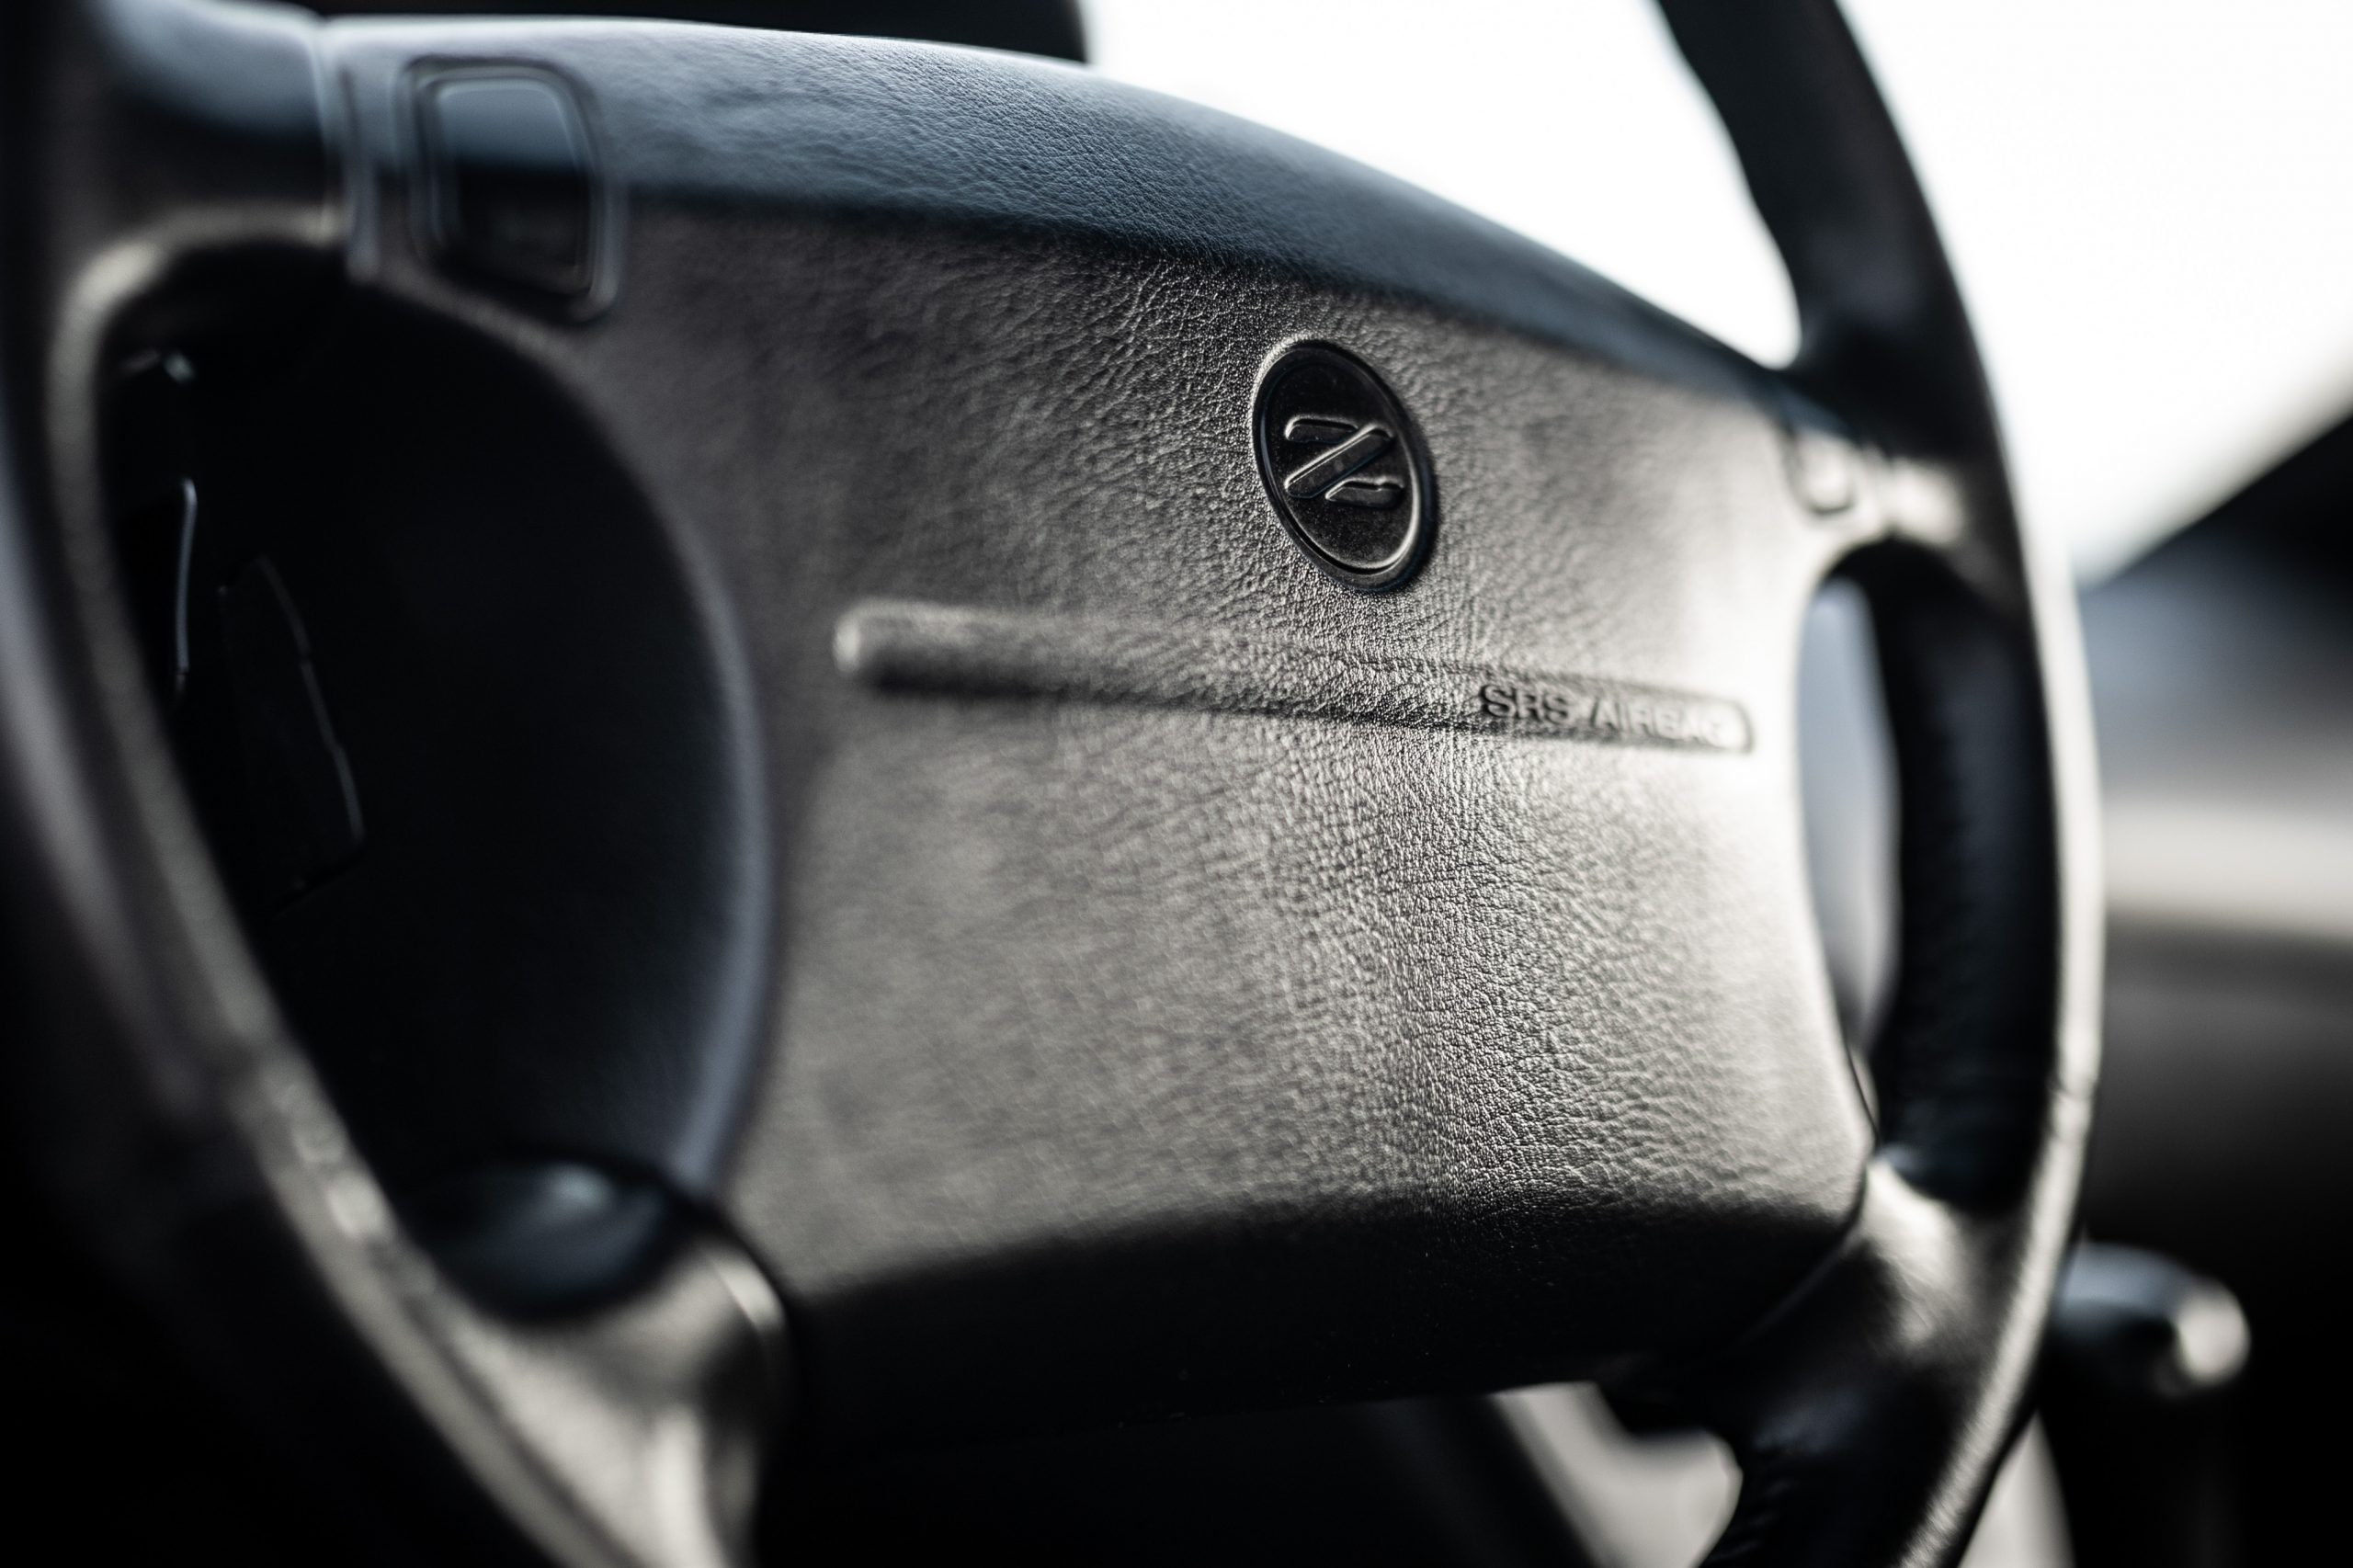 Nissan 300ZX steering wheel detail